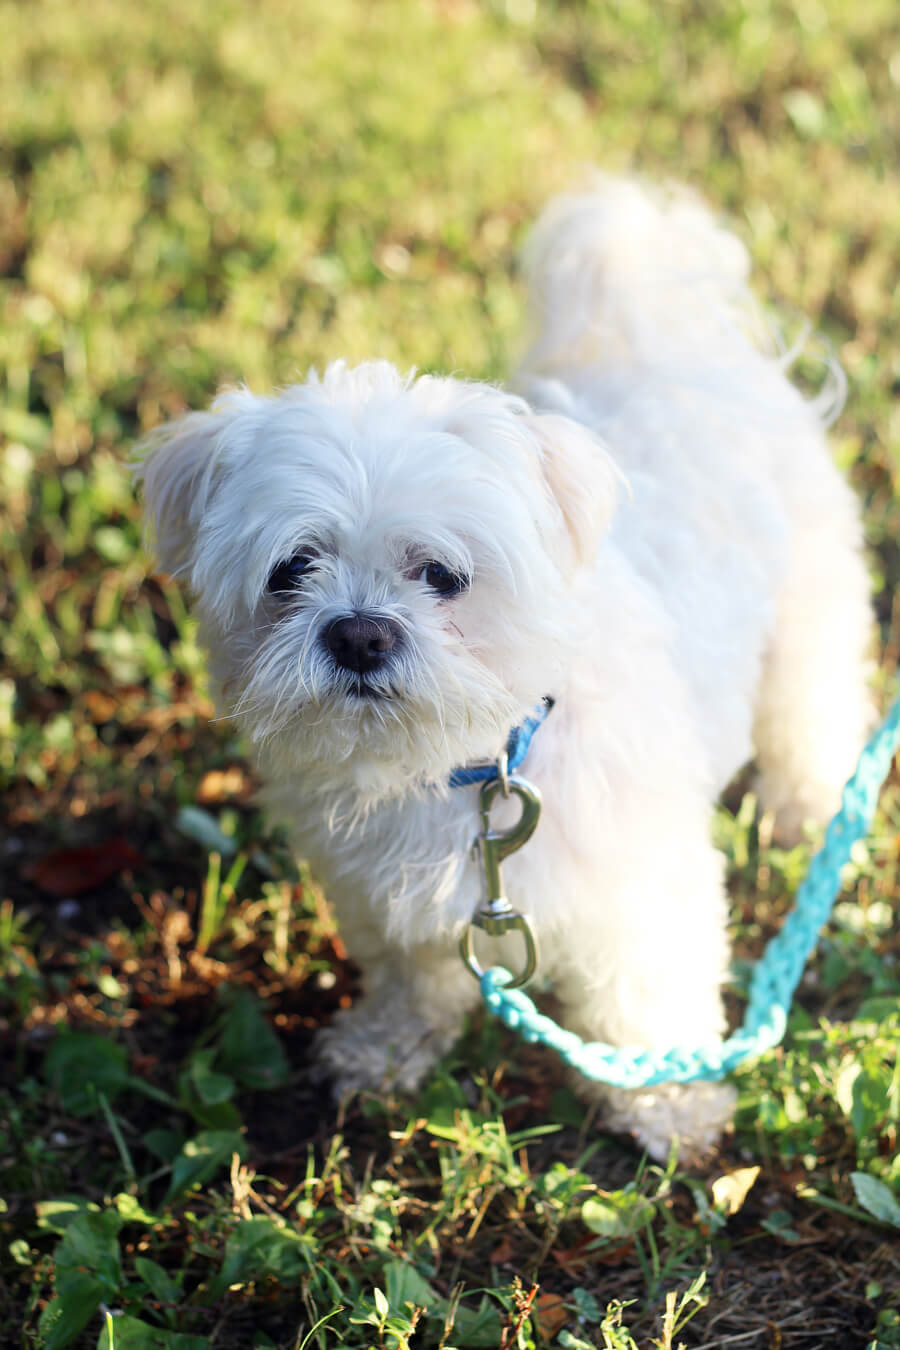 This guy...isn't he the cutest in his custom braided dog leash? Learn how to make one for your fur baby.